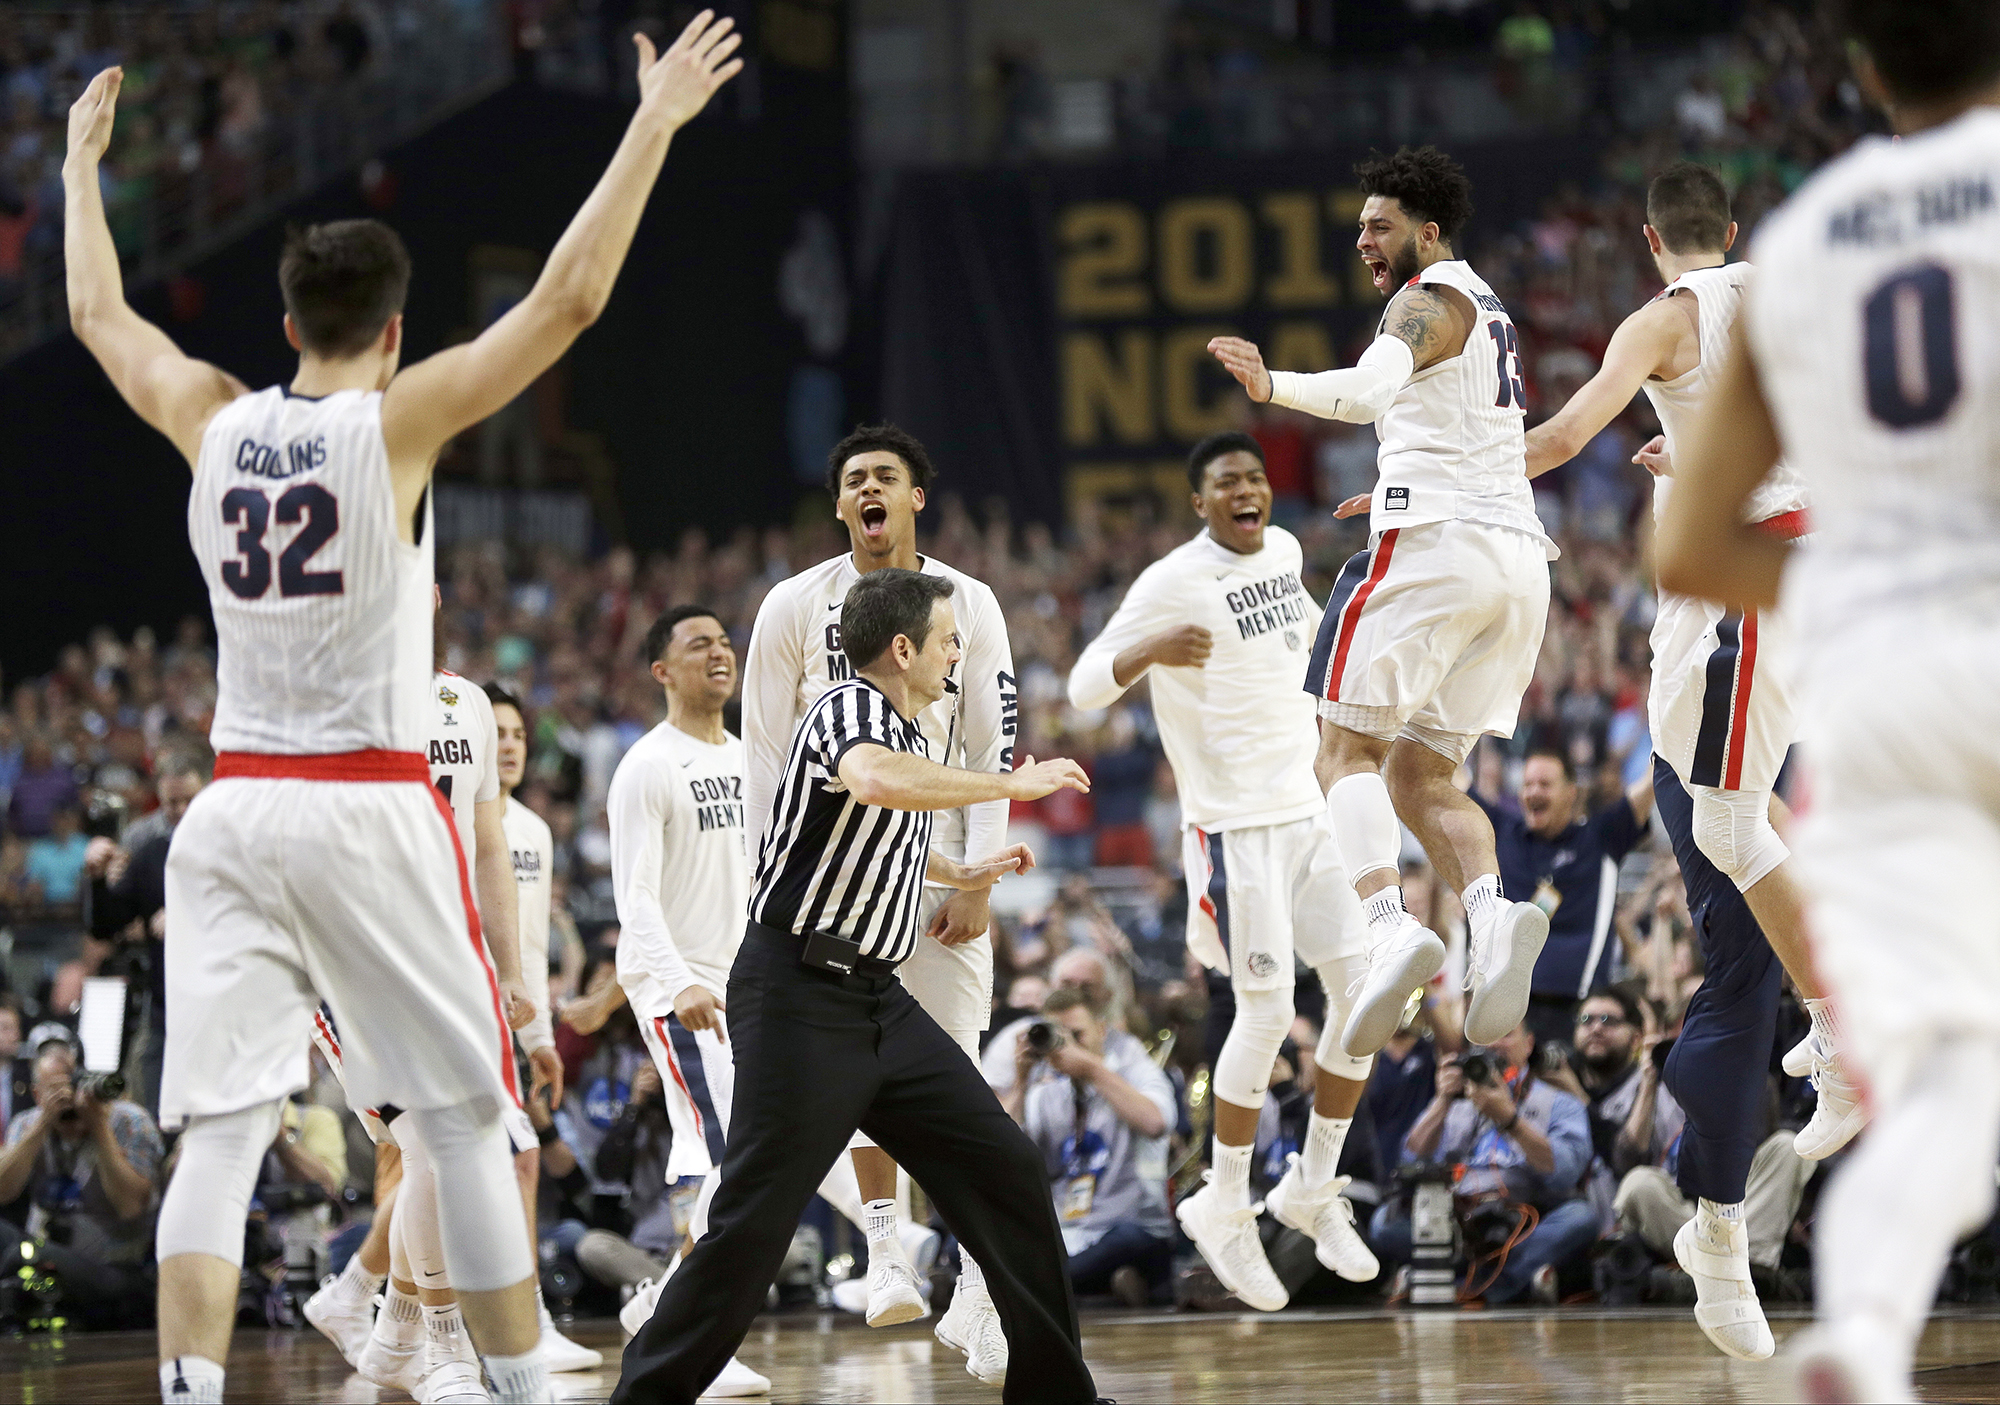 Gonzaga players celebrate after the semifinals of the Final Four NCAA college basketball tournament against South Carolina, on April 1, 2017, in Glendale, Ariz. Gonzaga won 77-73.